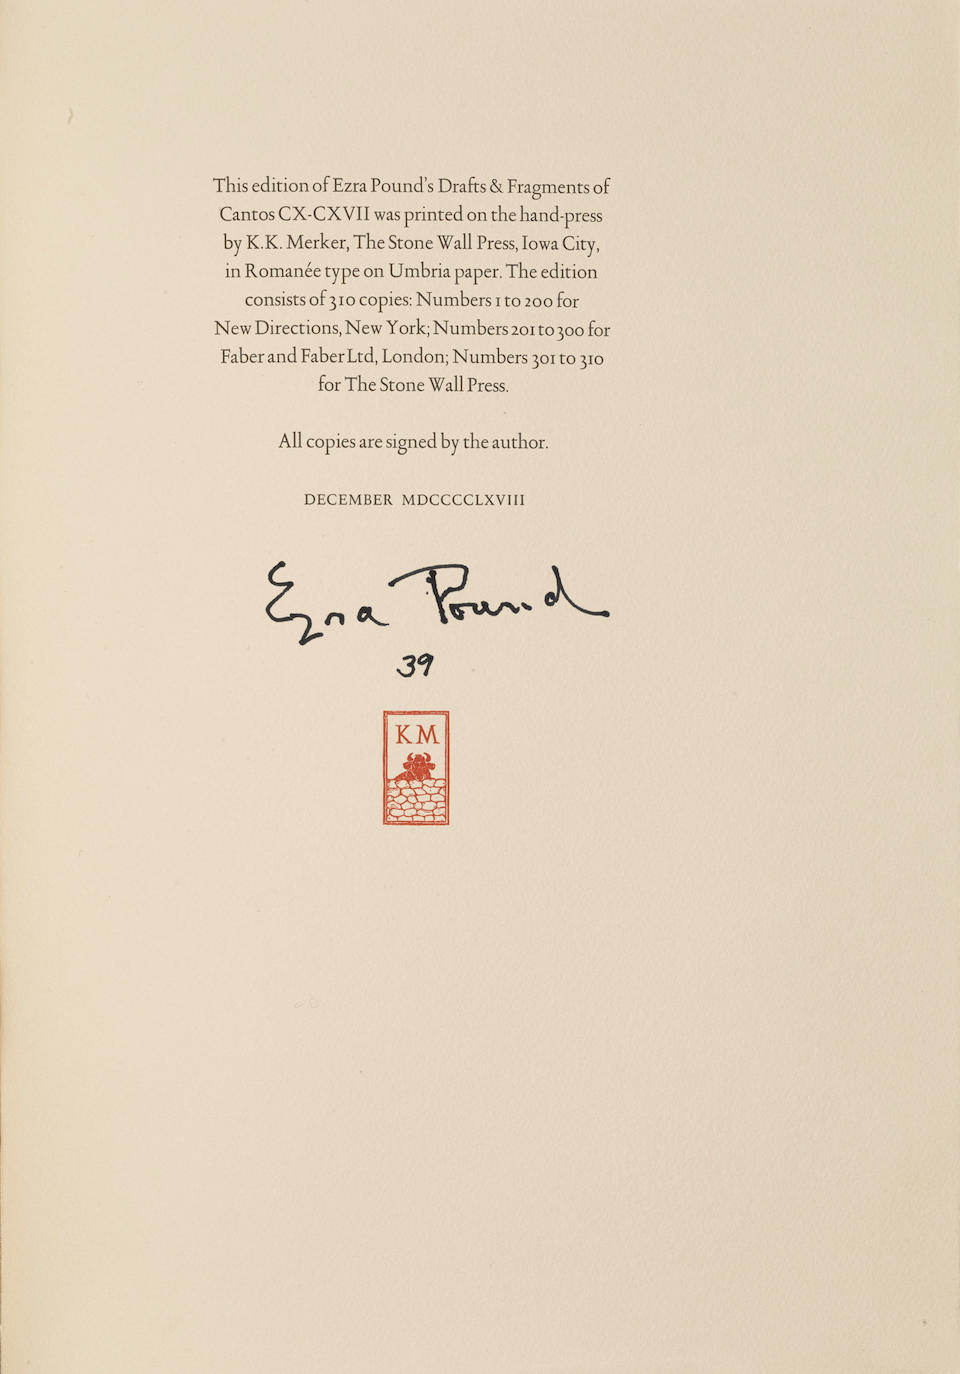 POUND, EZRA. 1885-1972. Drafts & Fragments of Cantos CX-CXVII. New York: New Directions at the Stone House Press, 1968.